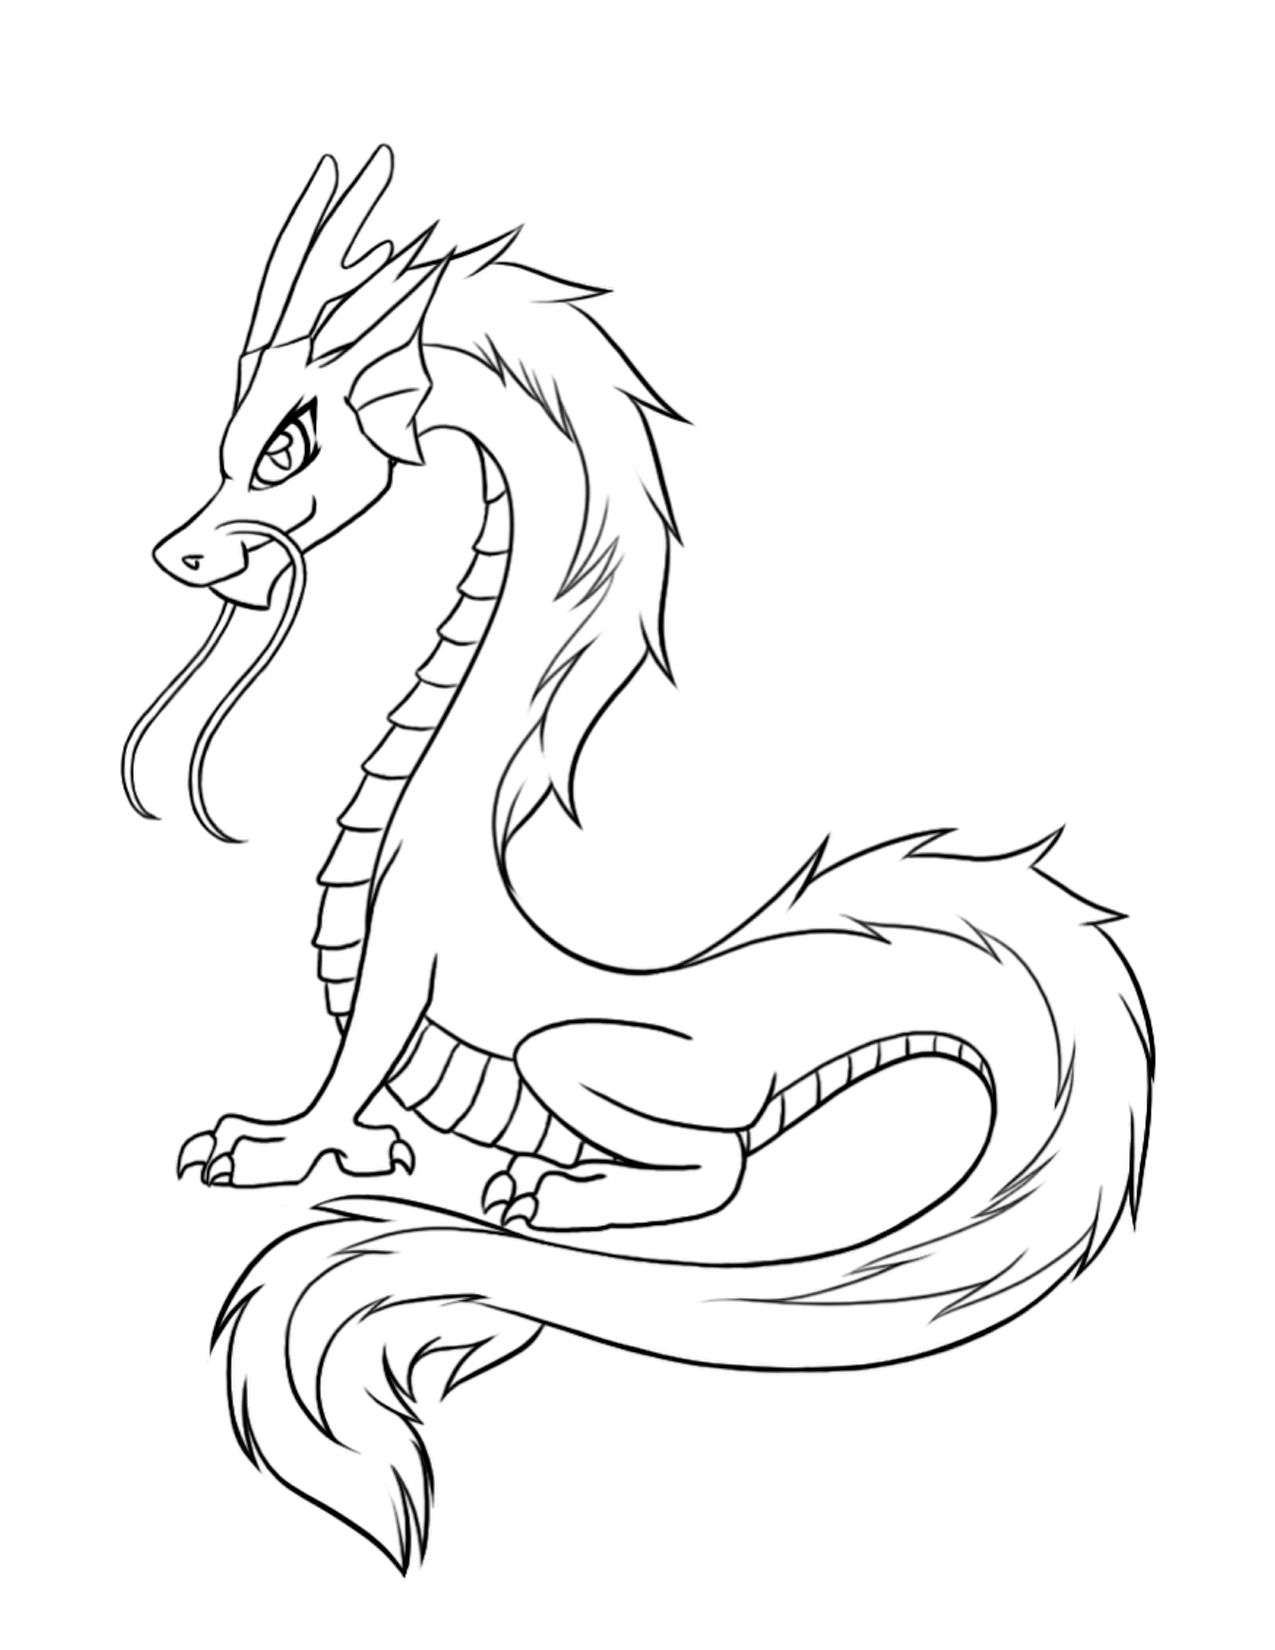 Cute Dragon Drawing at GetDrawings.com | Free for personal use Cute ...